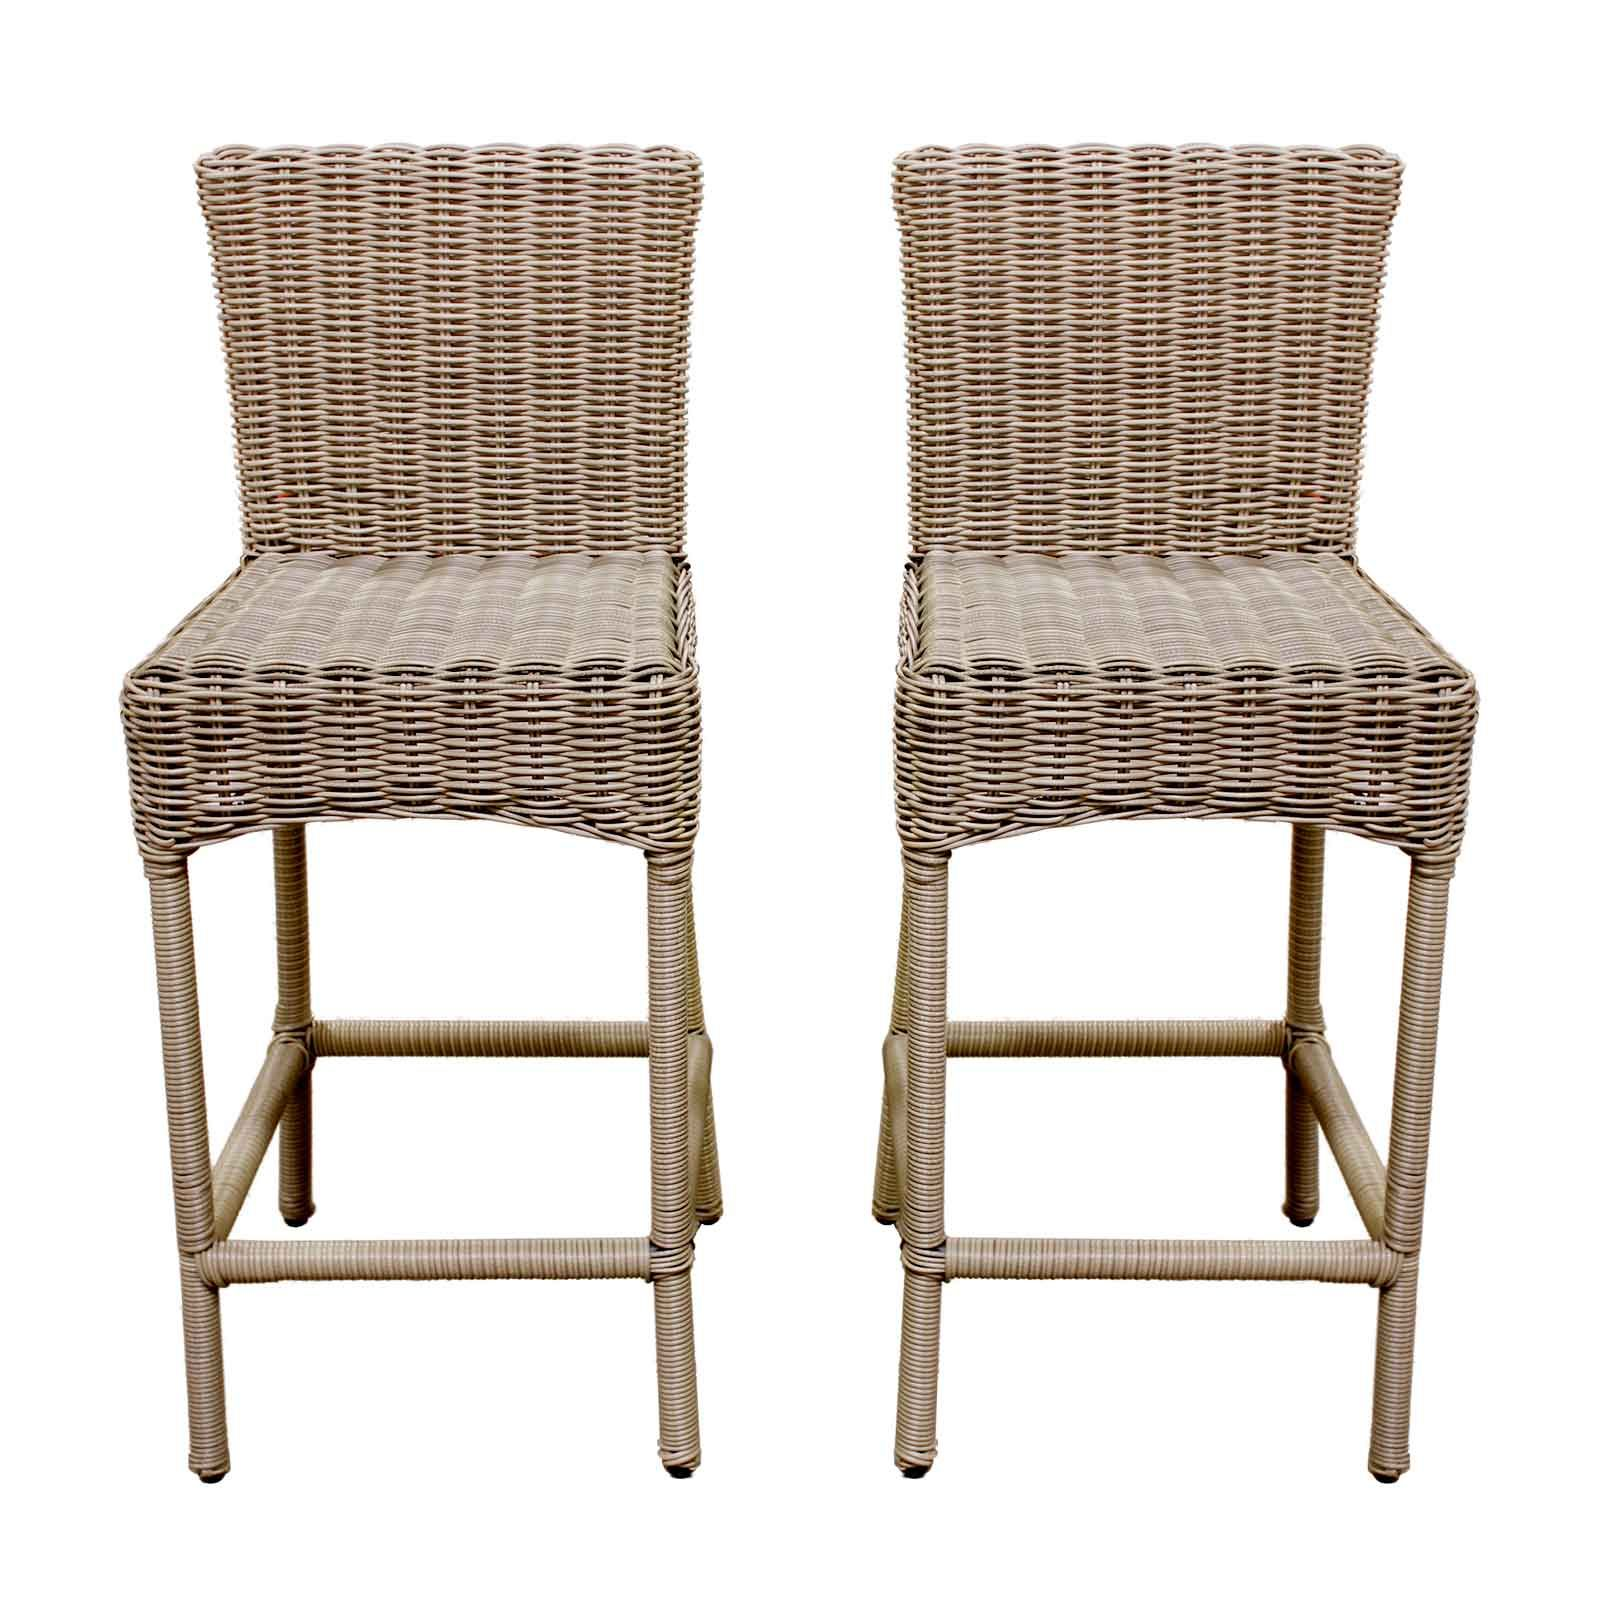 Outdoor Schrank Holz Outdoor Bar Stools Wicker Barhocker Wicker Bar Stools Rattan